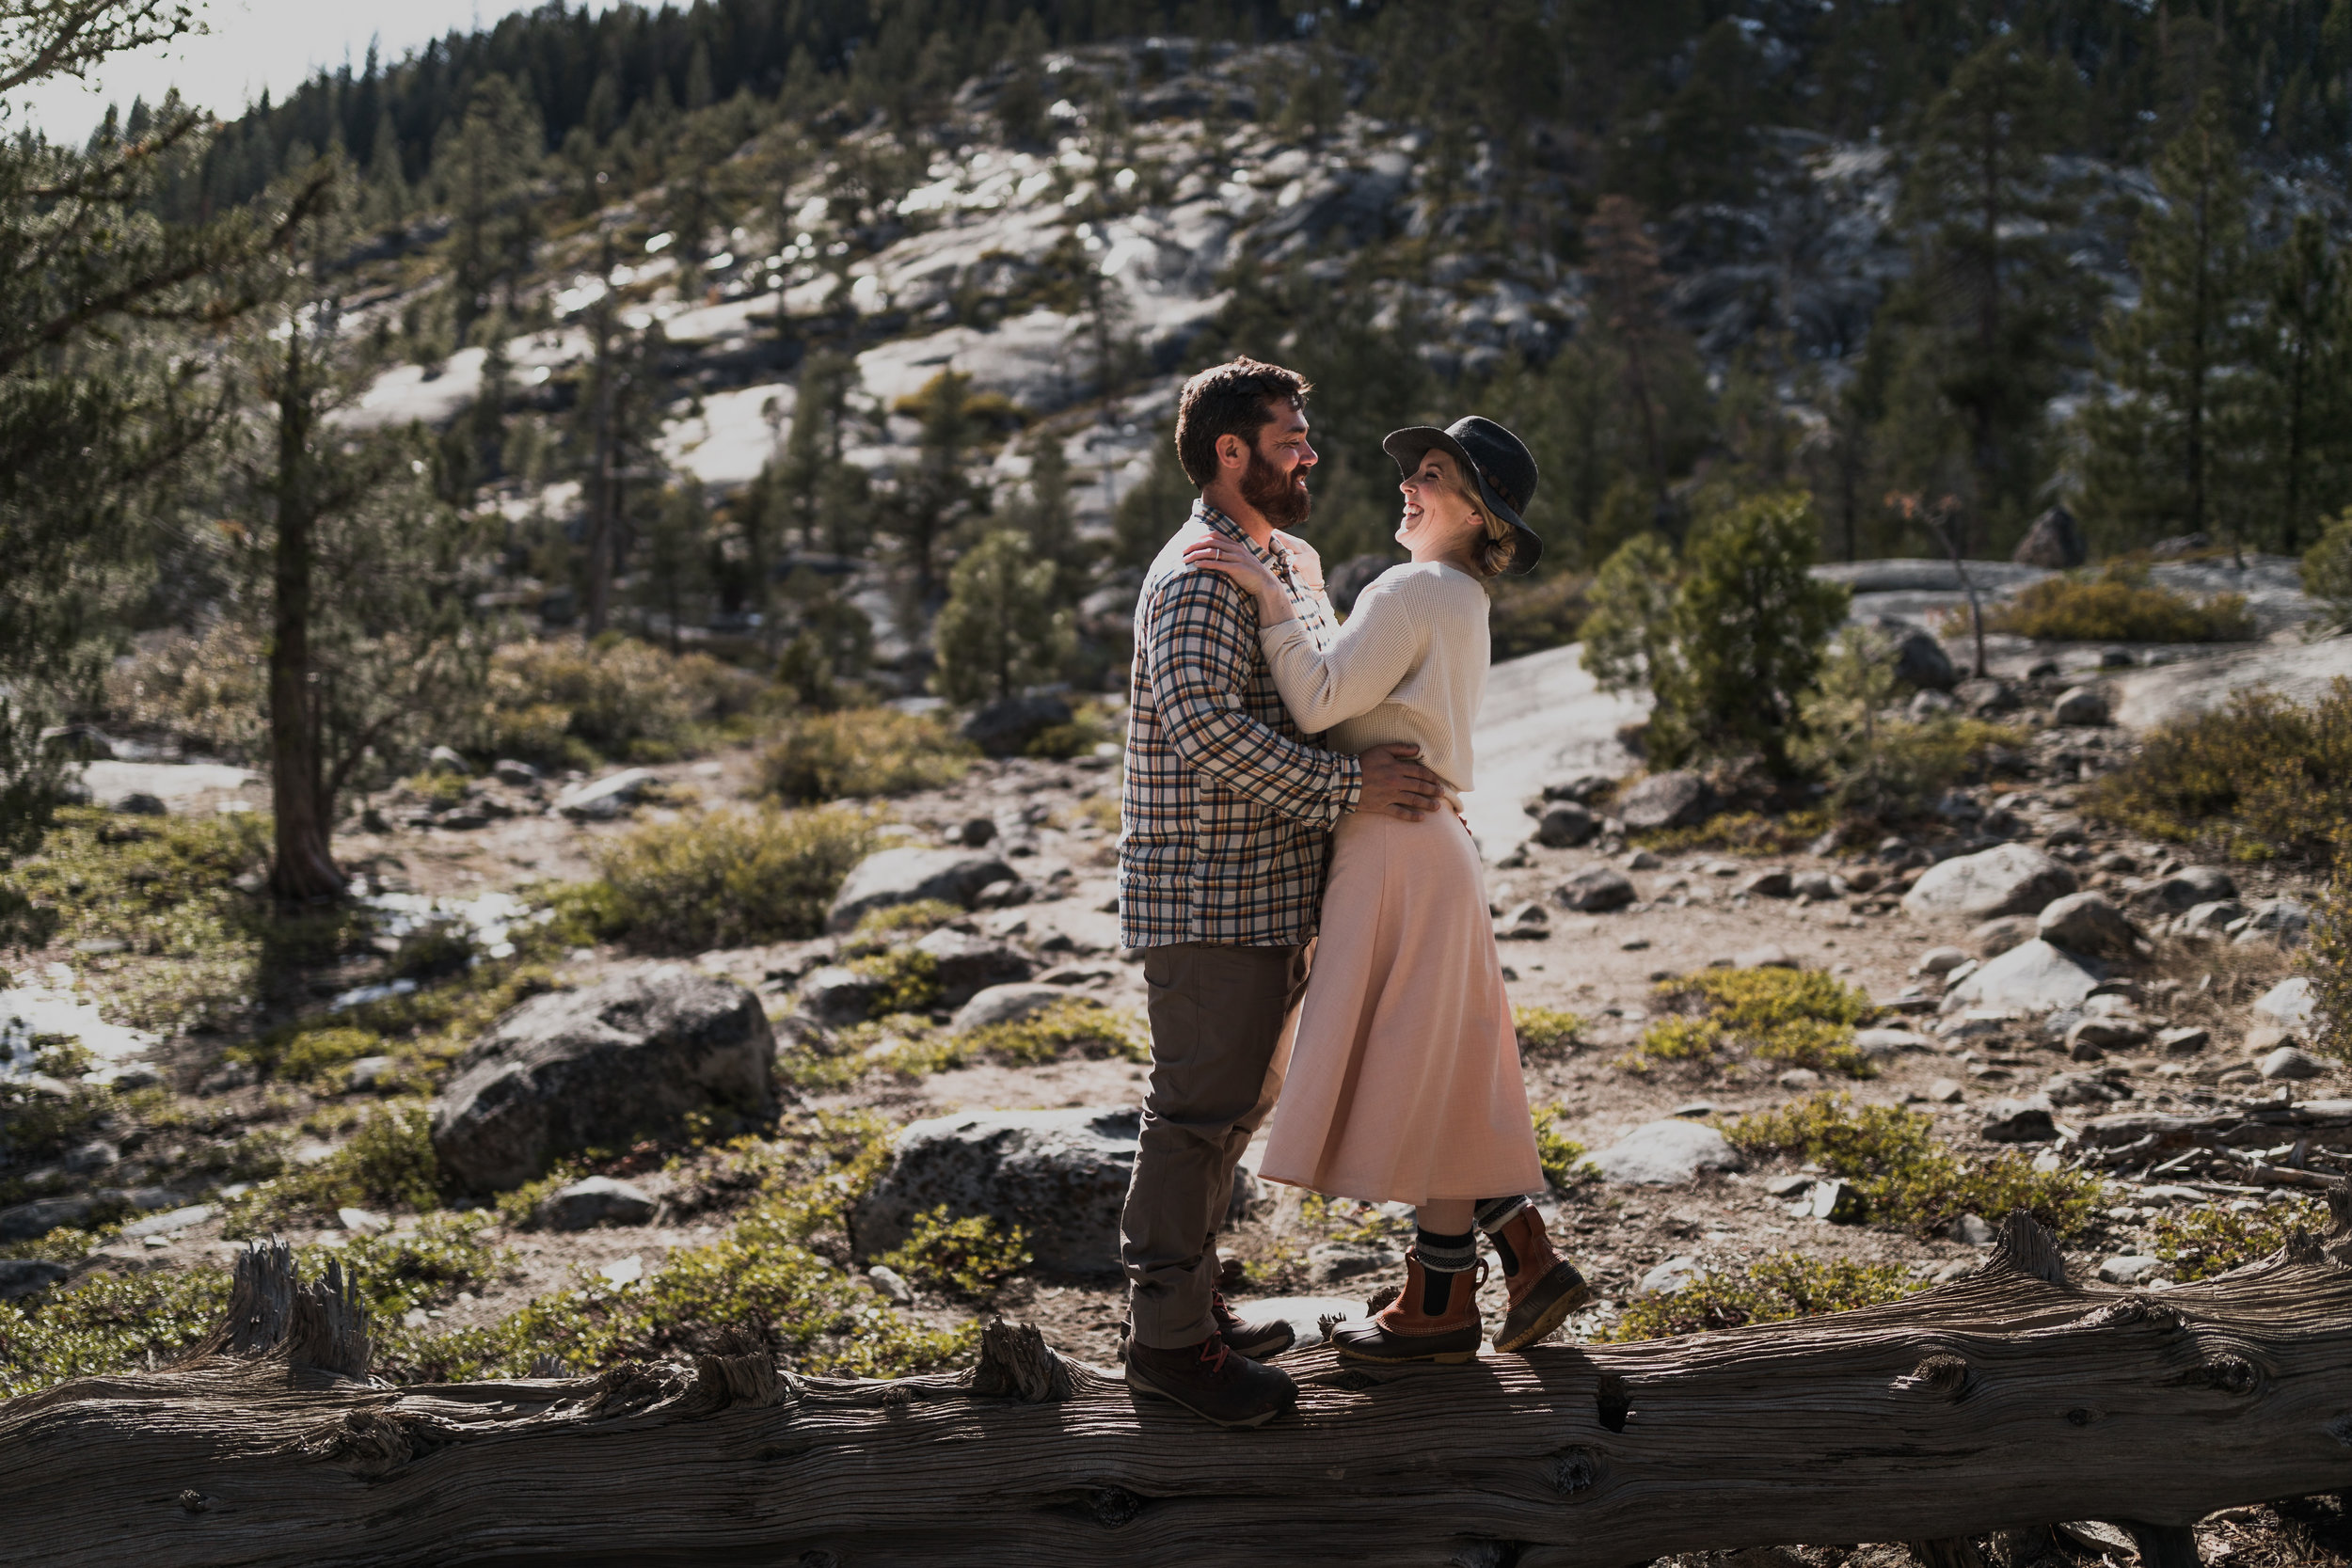 0M7A3609vildphotography-vild-photography-adventure-tahoe-portrait-Kelly&Brandon.jpg